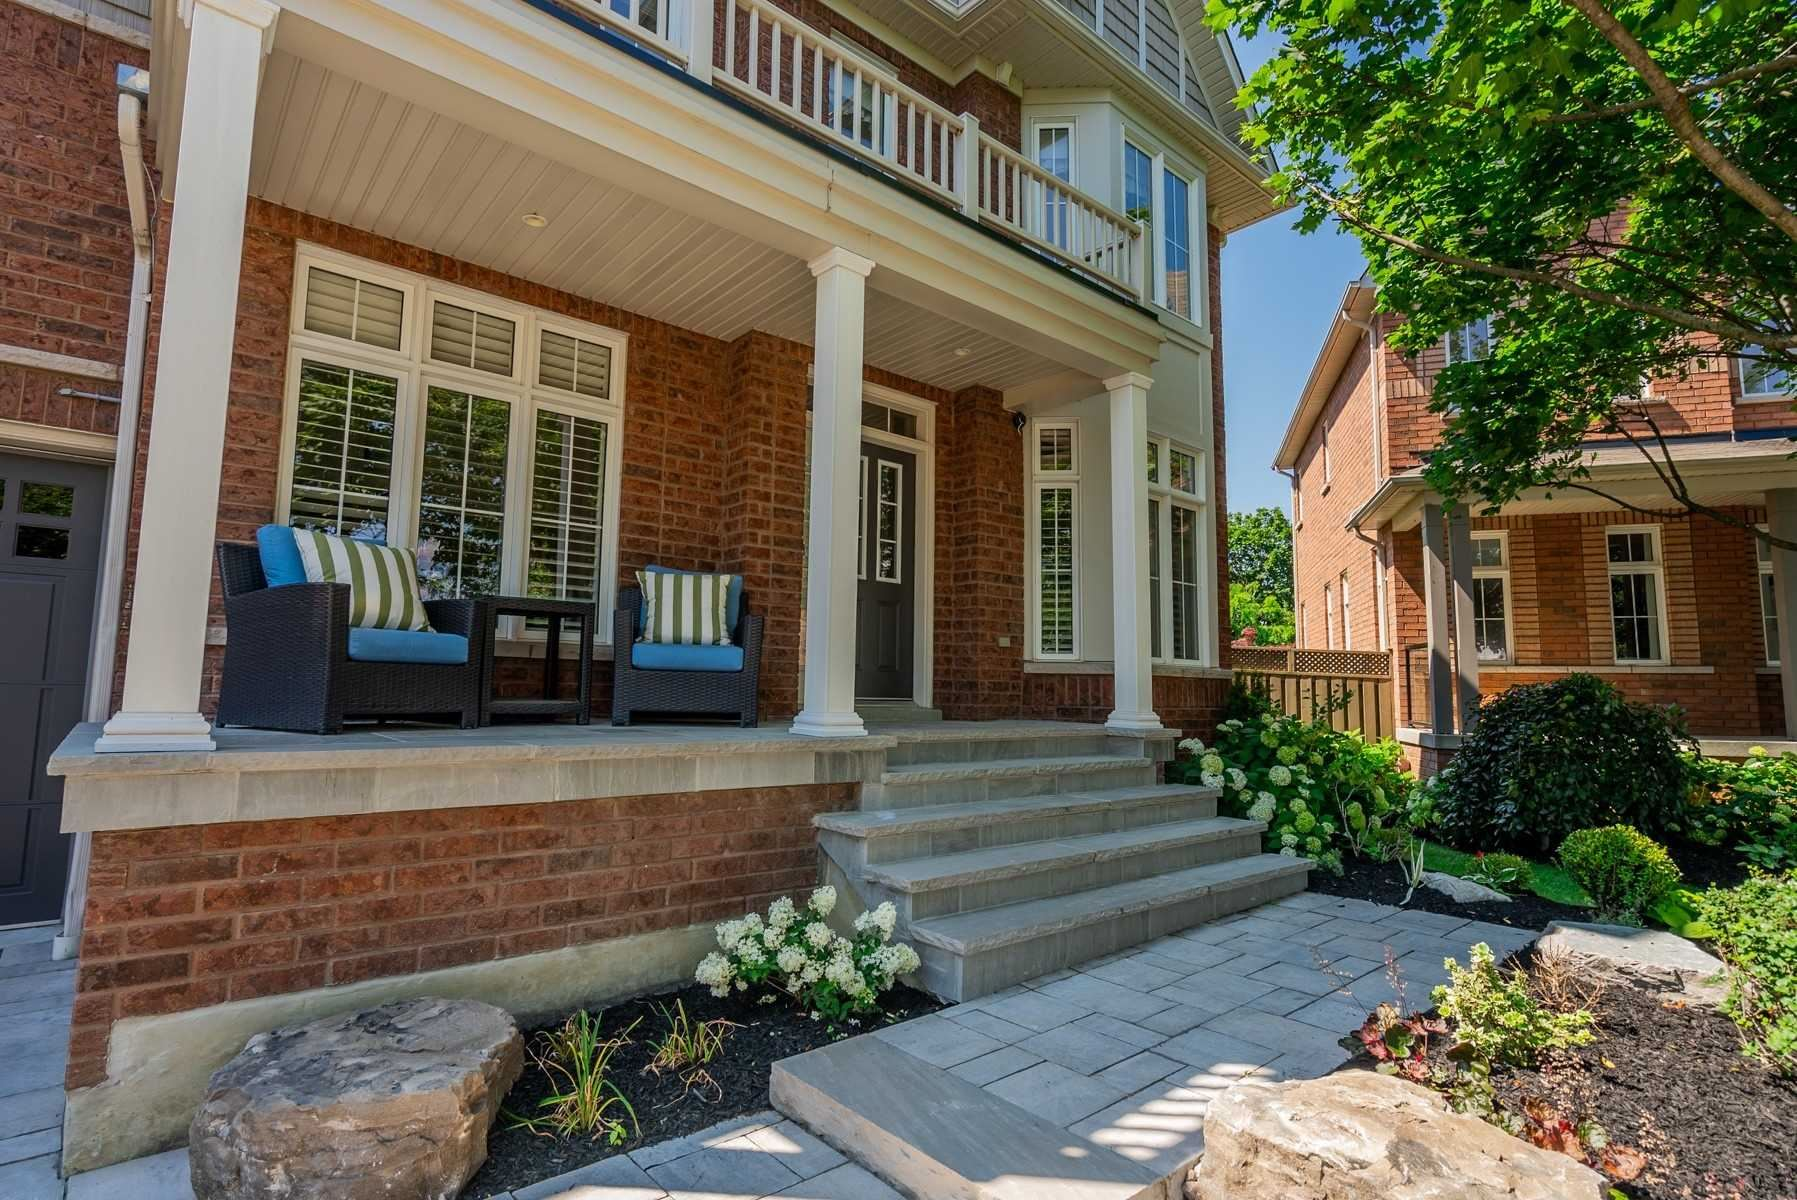 Photo of 36 Bayern Dr, Whitby, ON L1M0A3 (MLS # E5322421)